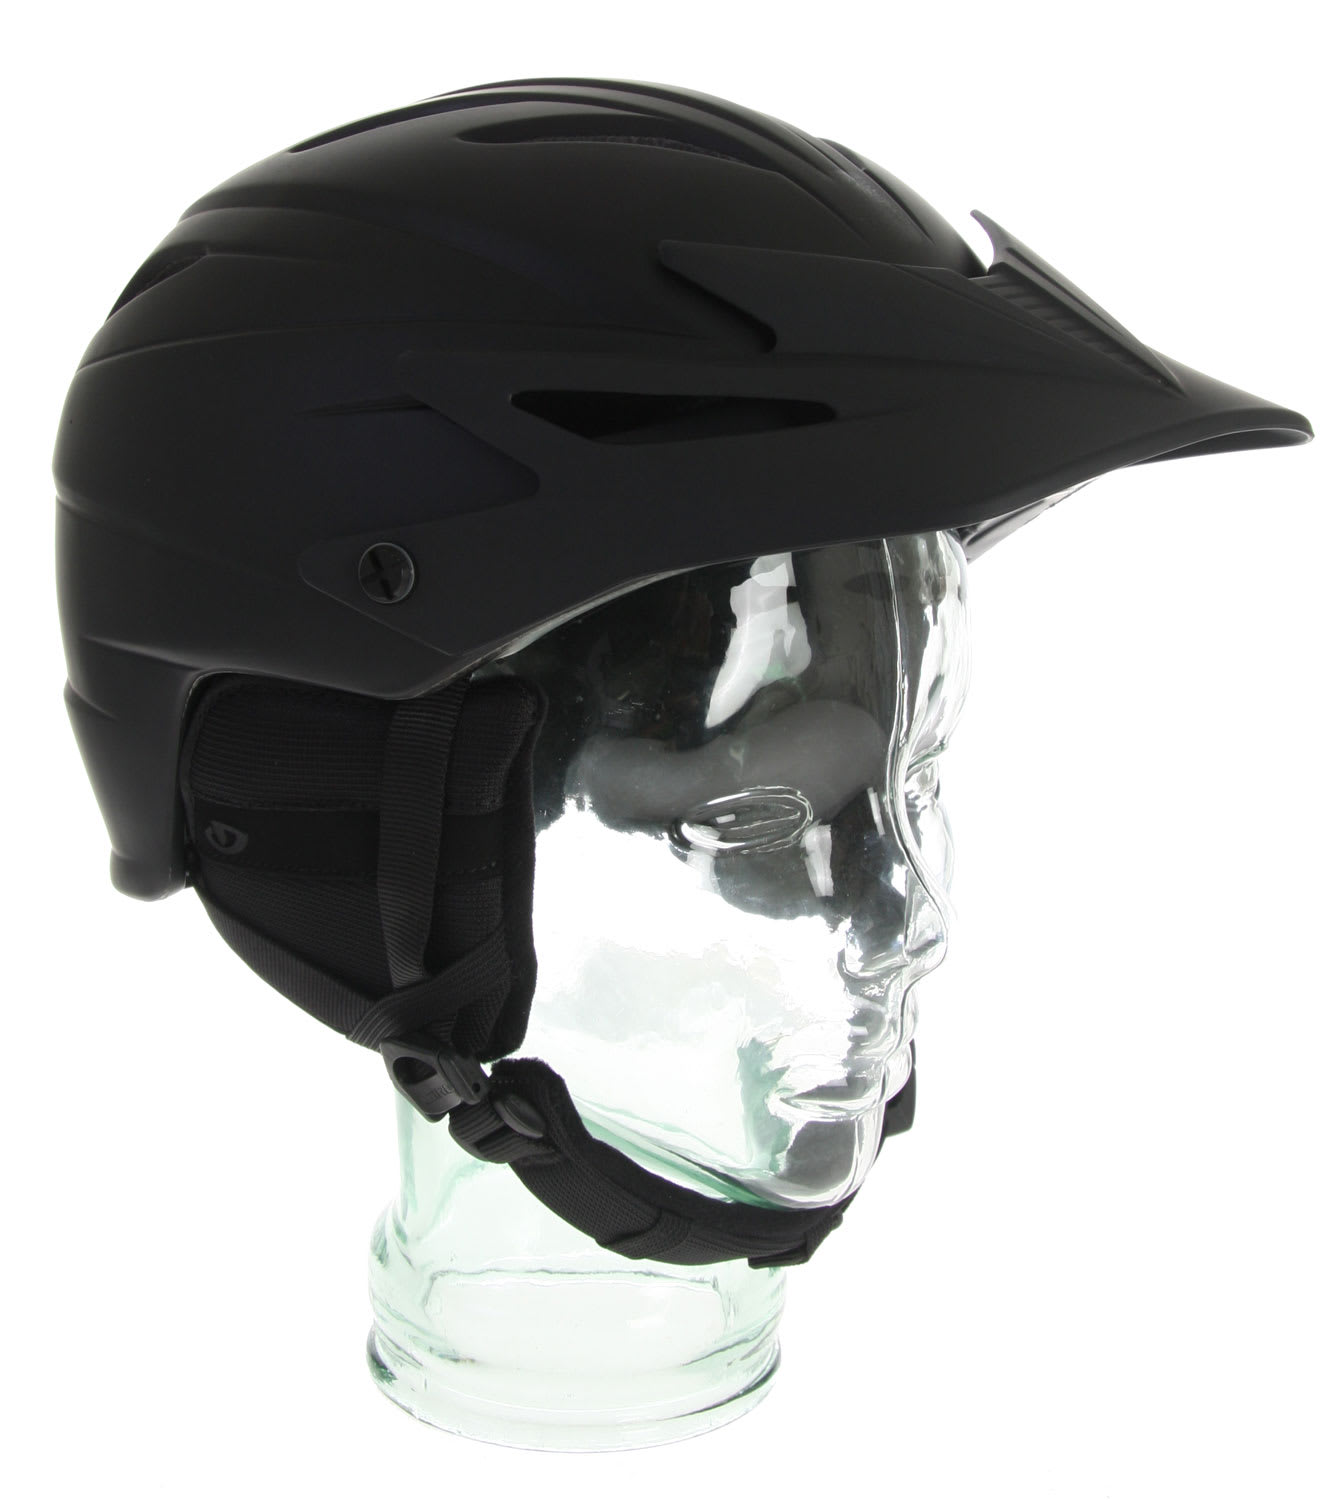 Shop for Giro G10MX Snowboard Helmet Matte Black - Men's